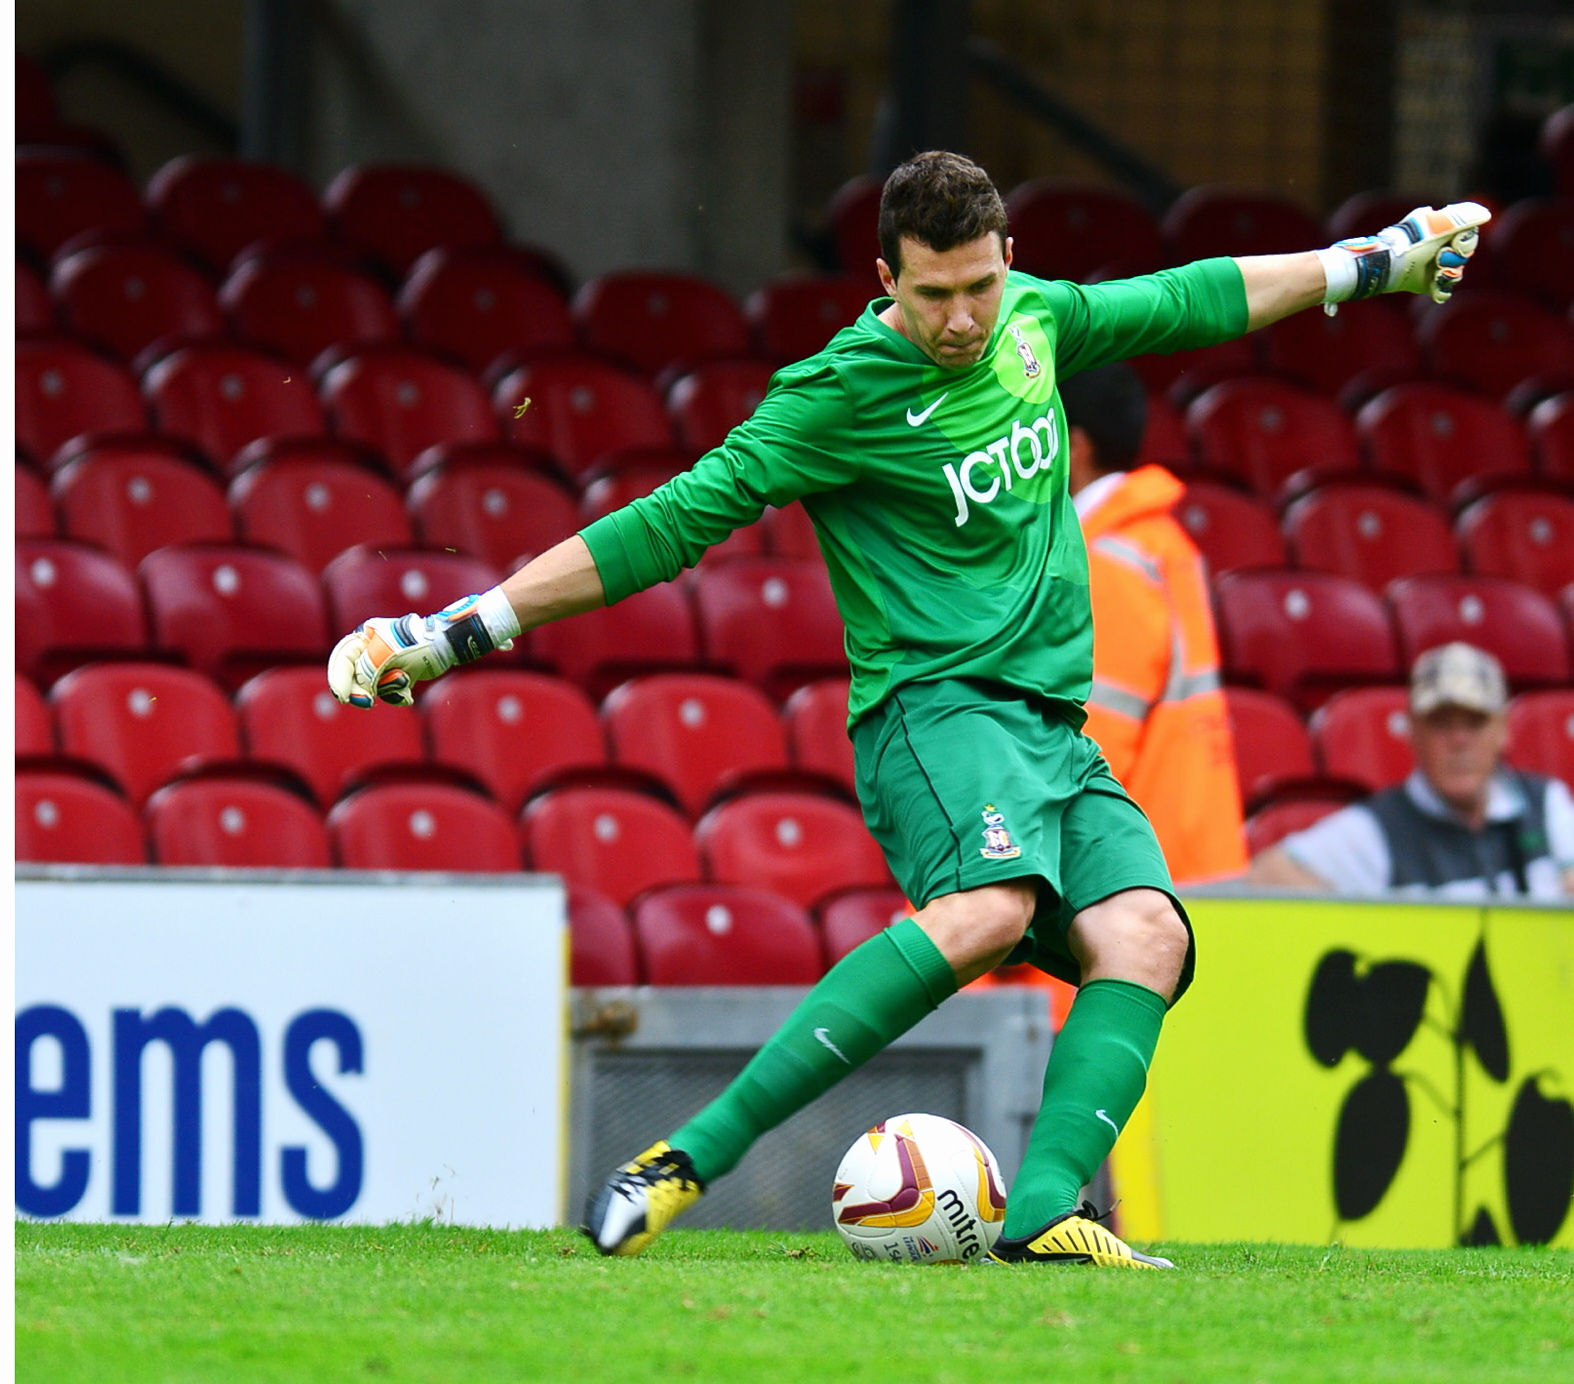 HAPPY DAYS: Jon McLaughlin is enjoying his football more than ever